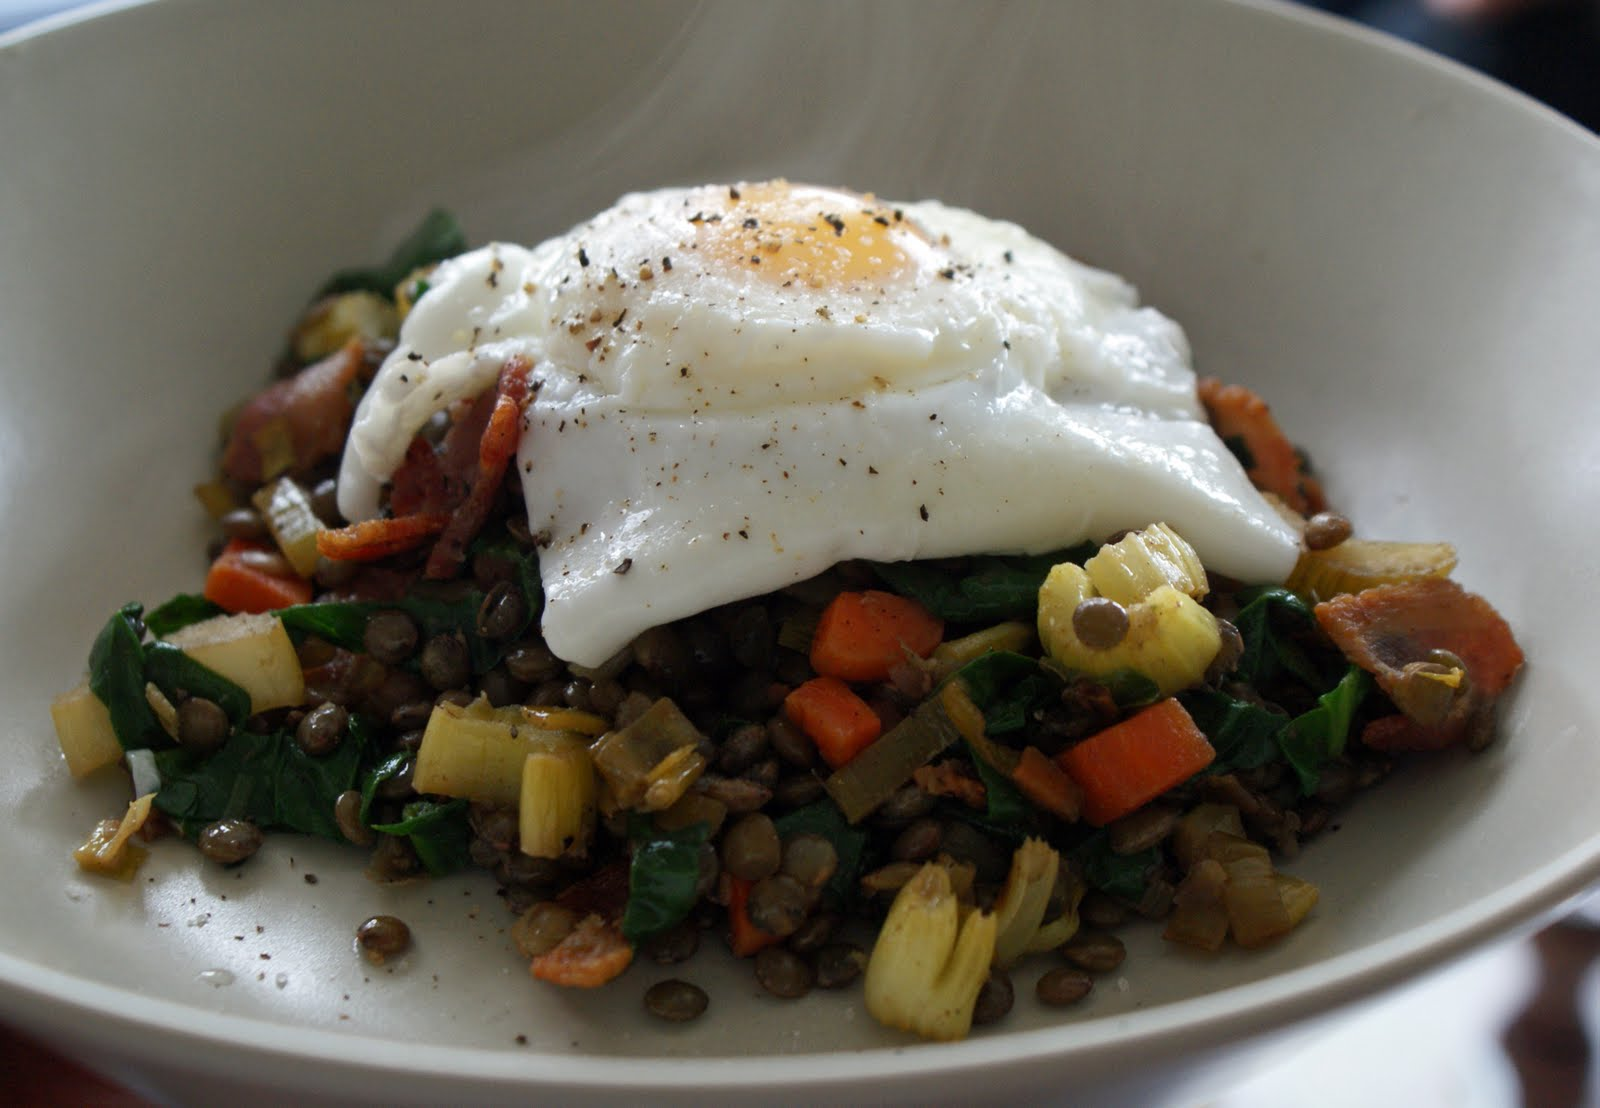 Poached Eggs Over Warm Lentil Salad with Bacon - Dinner With Julie